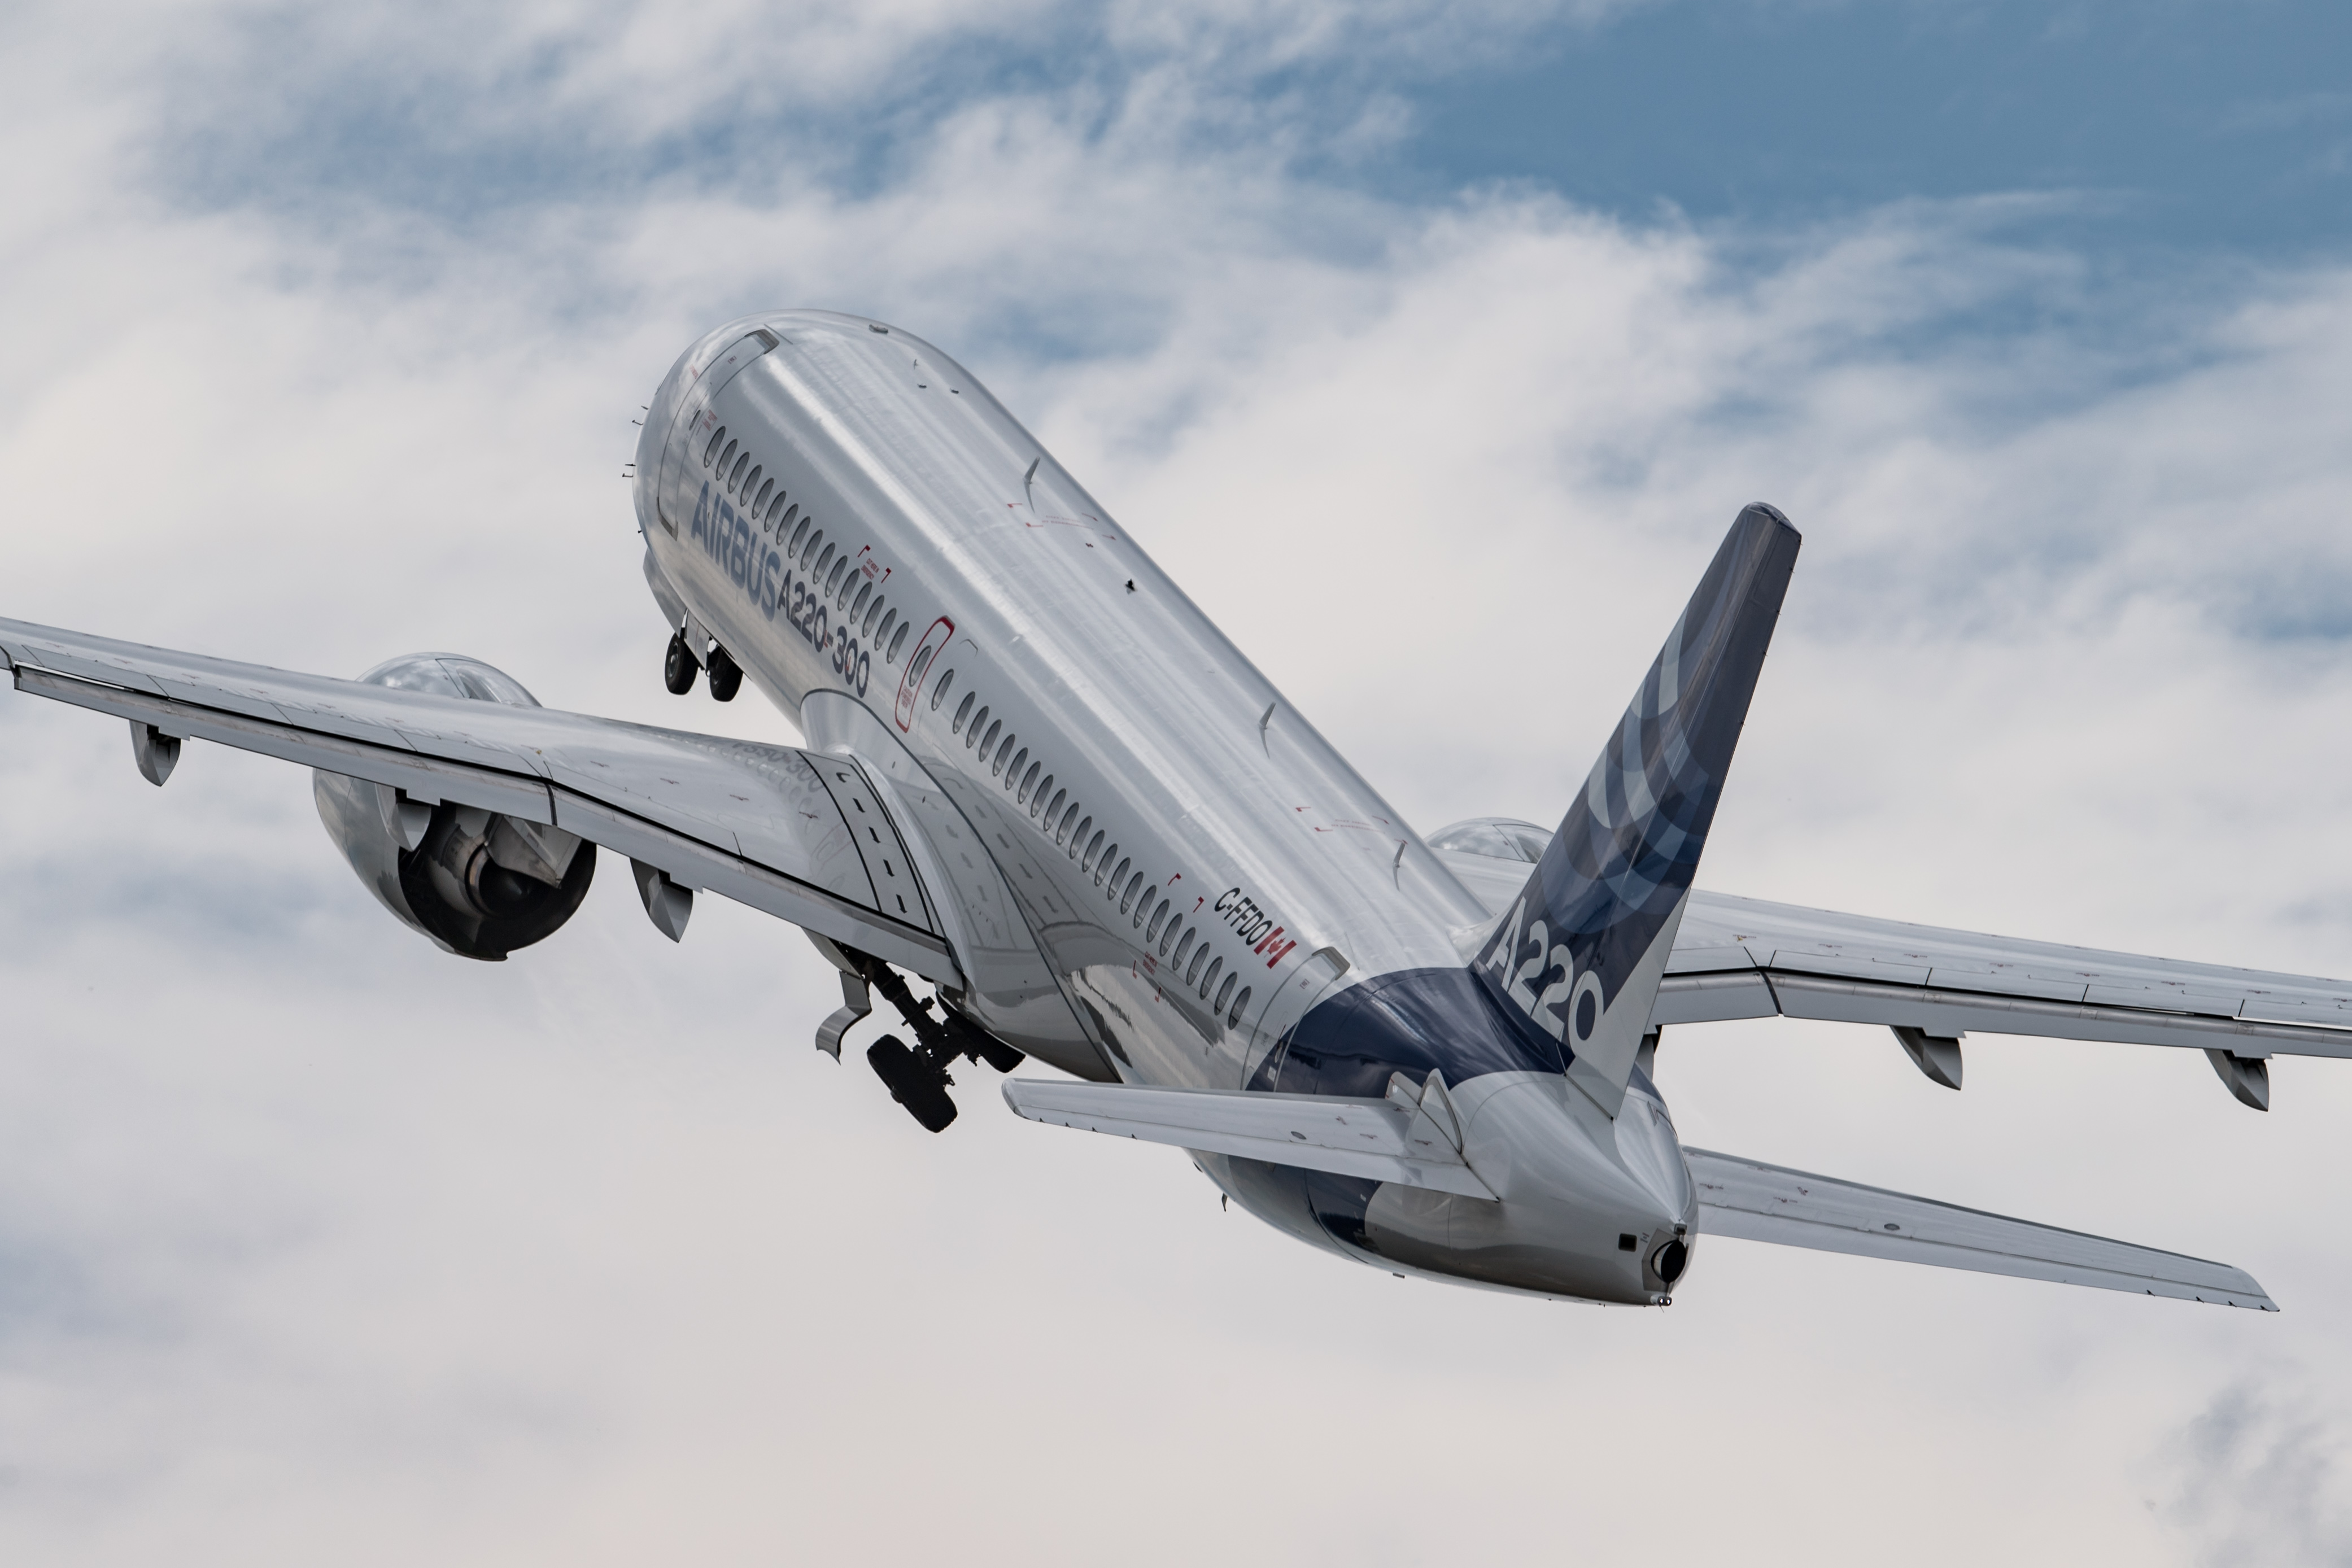 First year of Airbus leading the A220 program a great success